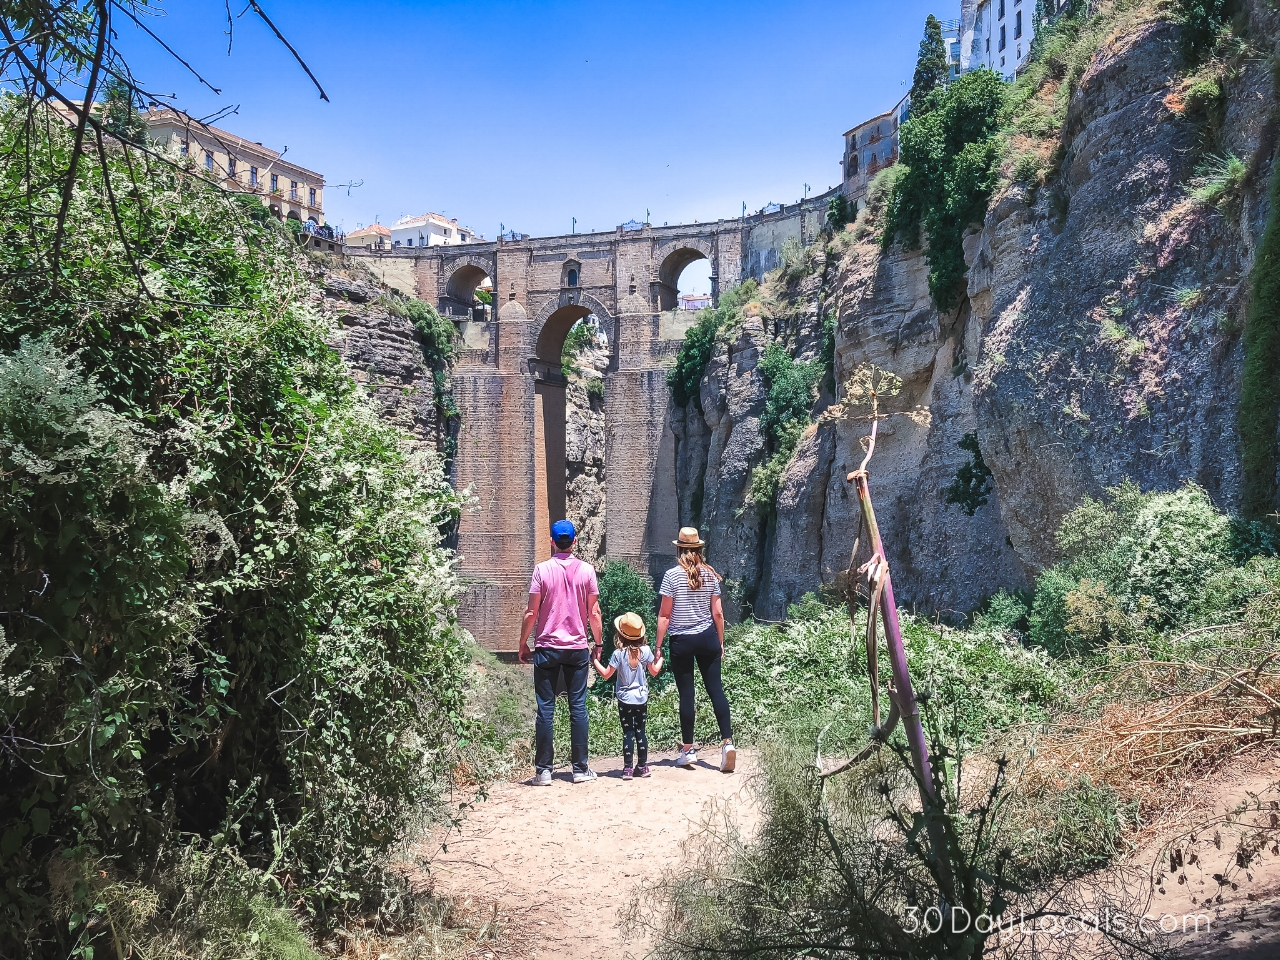 Road trip through Andalusia Spain on your next family vacation. Tips on where to say and what to see on a long weekend.